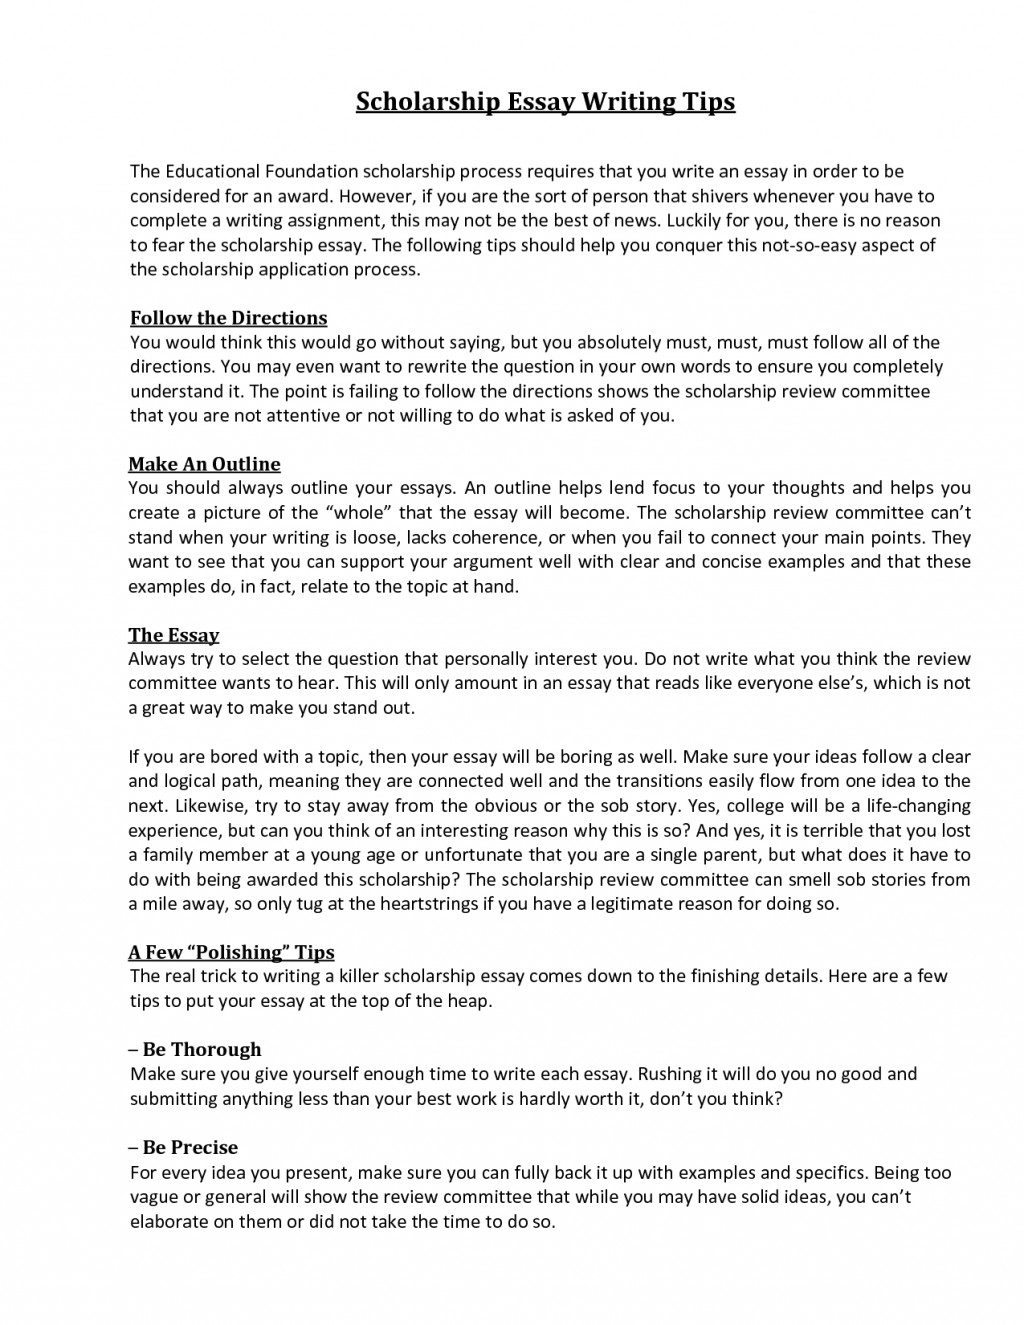 007 Essay Example Dbk4jdbin7 How To Write Good Surprising Essays Best Pdf A Better Bryan Greetham Learning In English Large